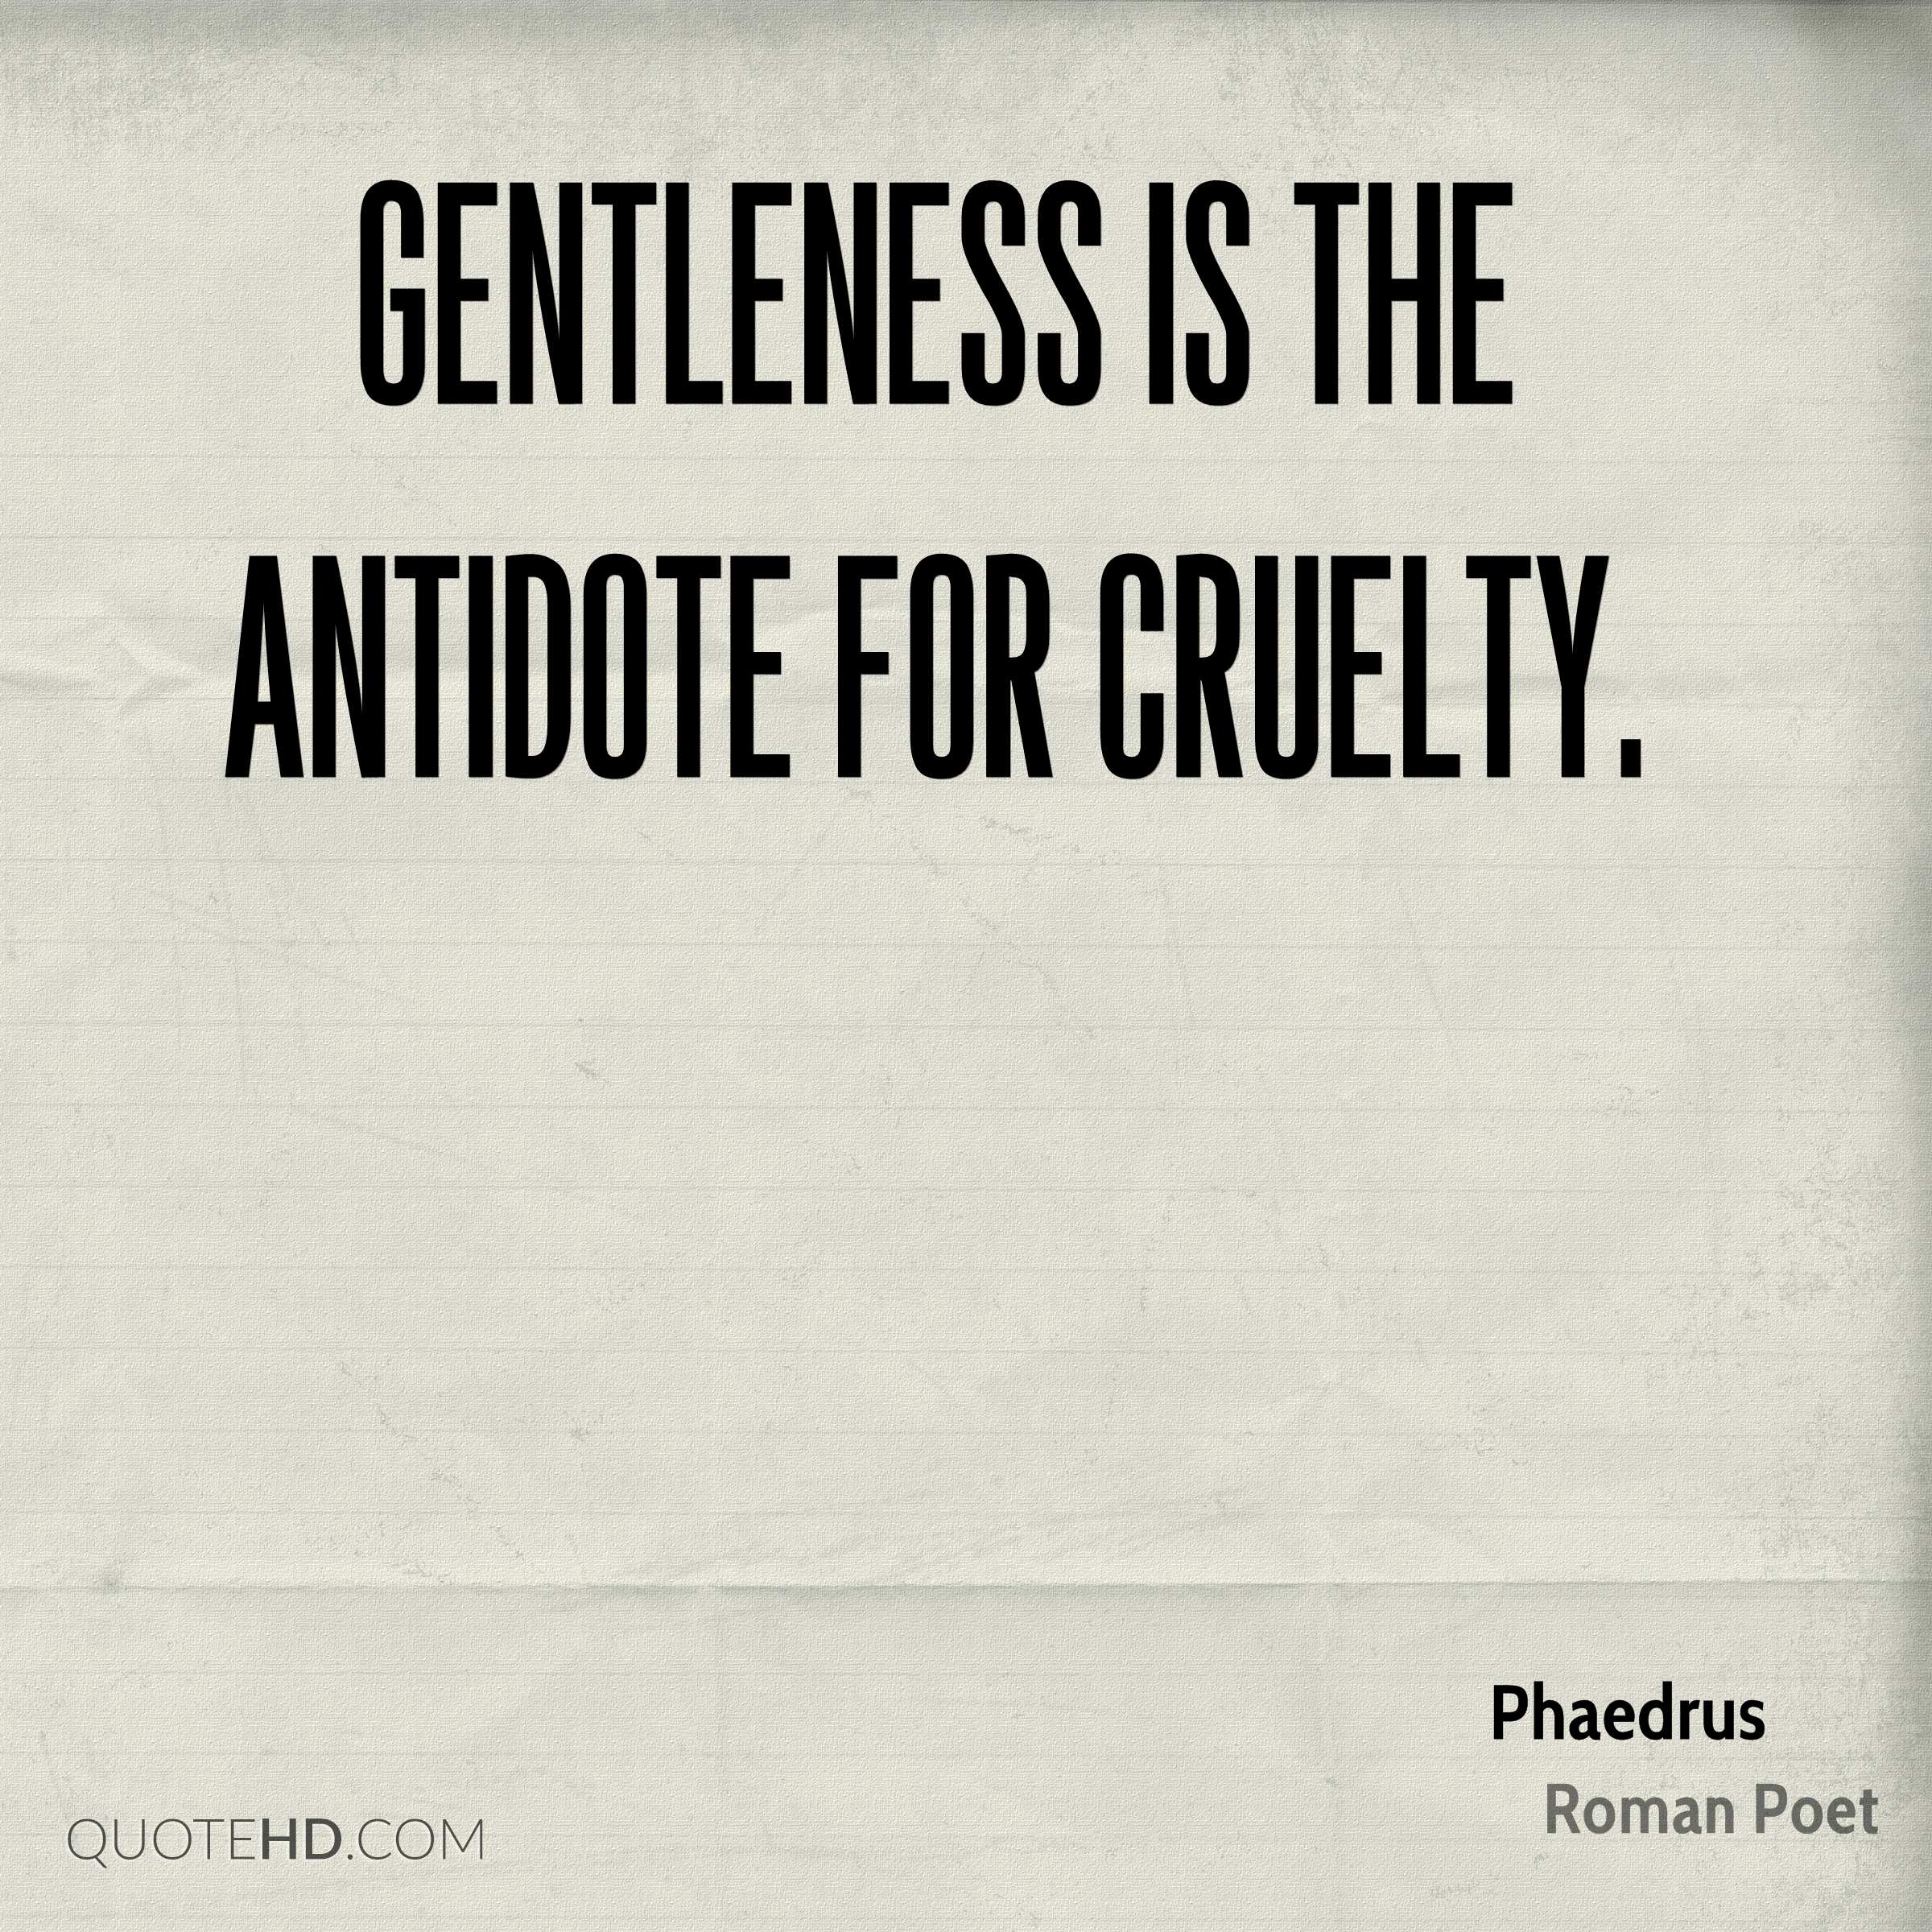 Gentleness is the antidote for cruelty.